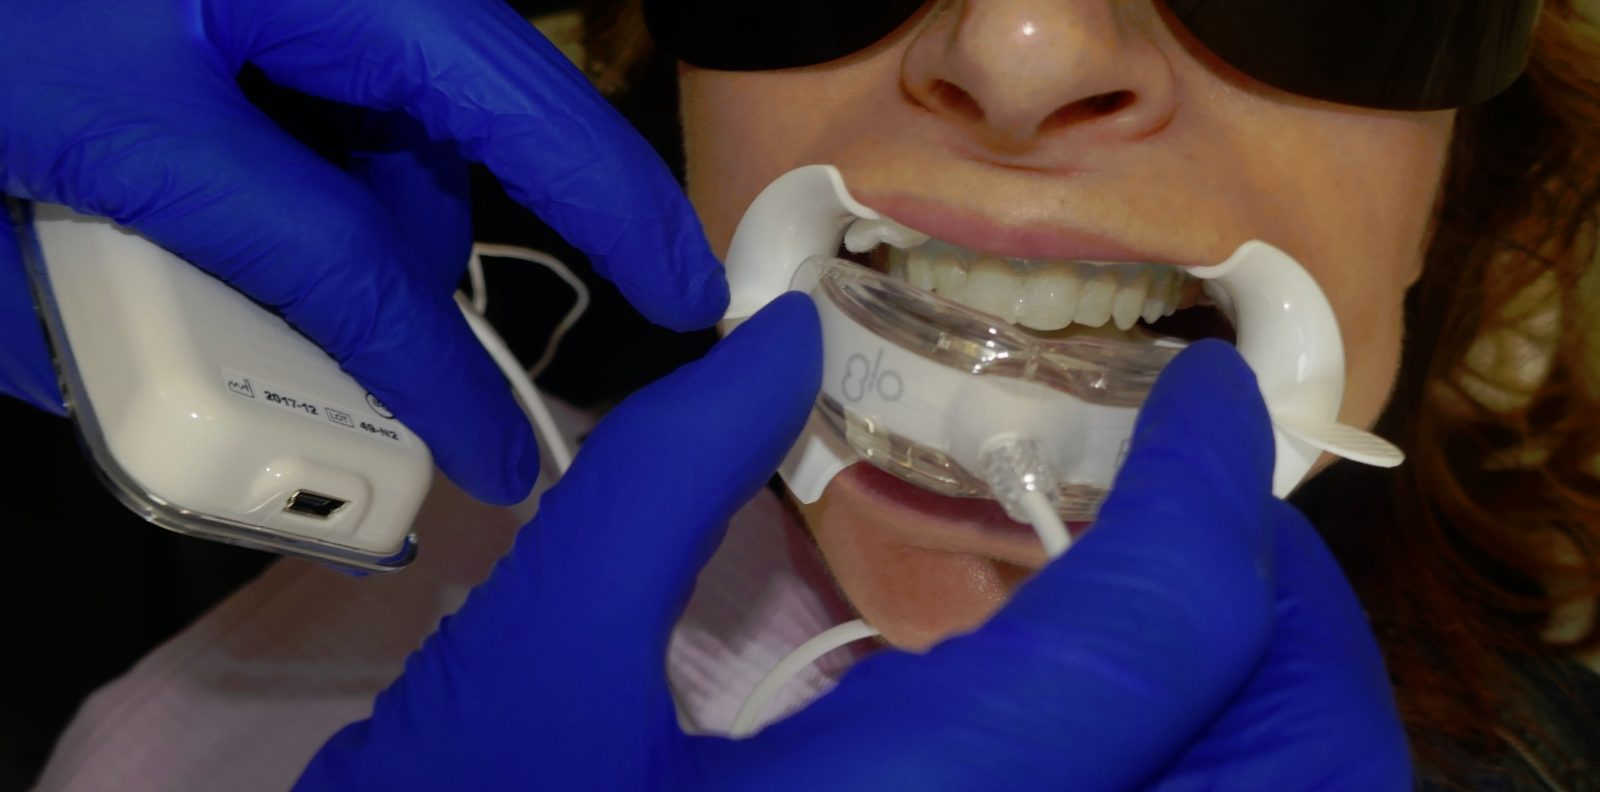 GLO teeth whotening device being inserted into patient's mouth